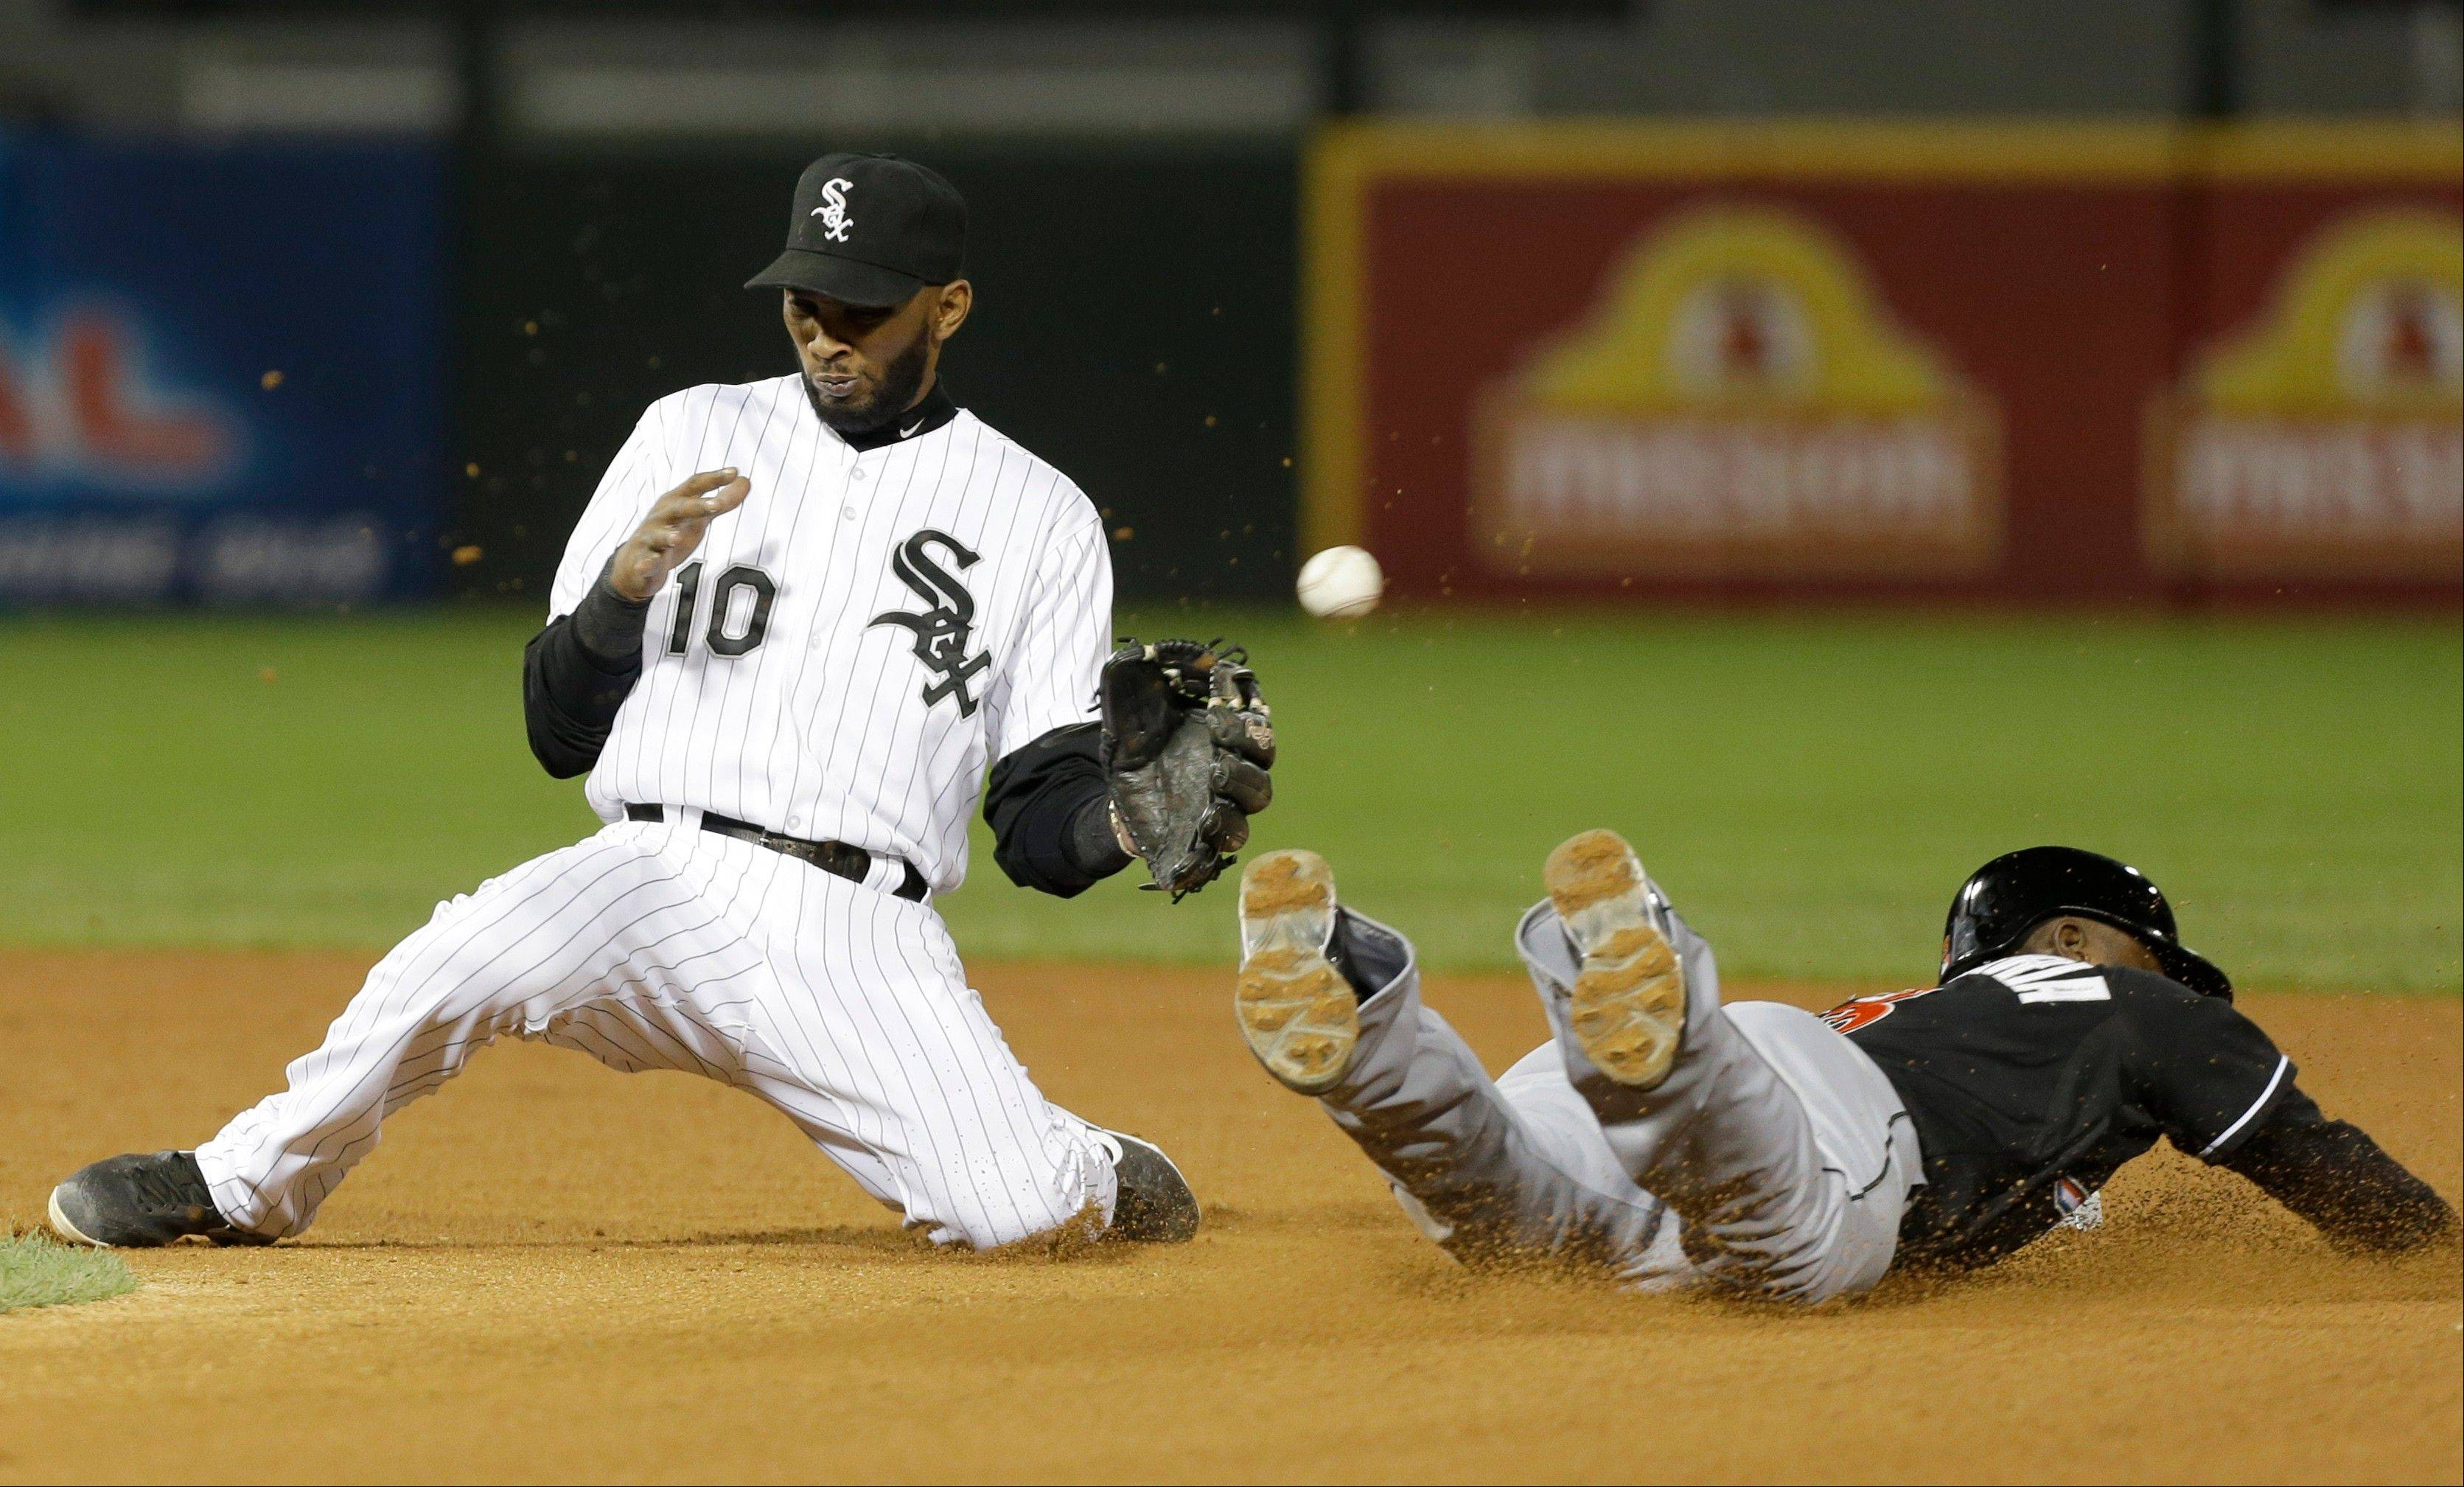 Miami Marlins' Adeiny Hechavarria, right, steals second as Chicago White Sox shortstop Alexei Ramirez cannot make a catch during the eighth inning of a baseball game on Friday, May 24, 2013, in Chicago.